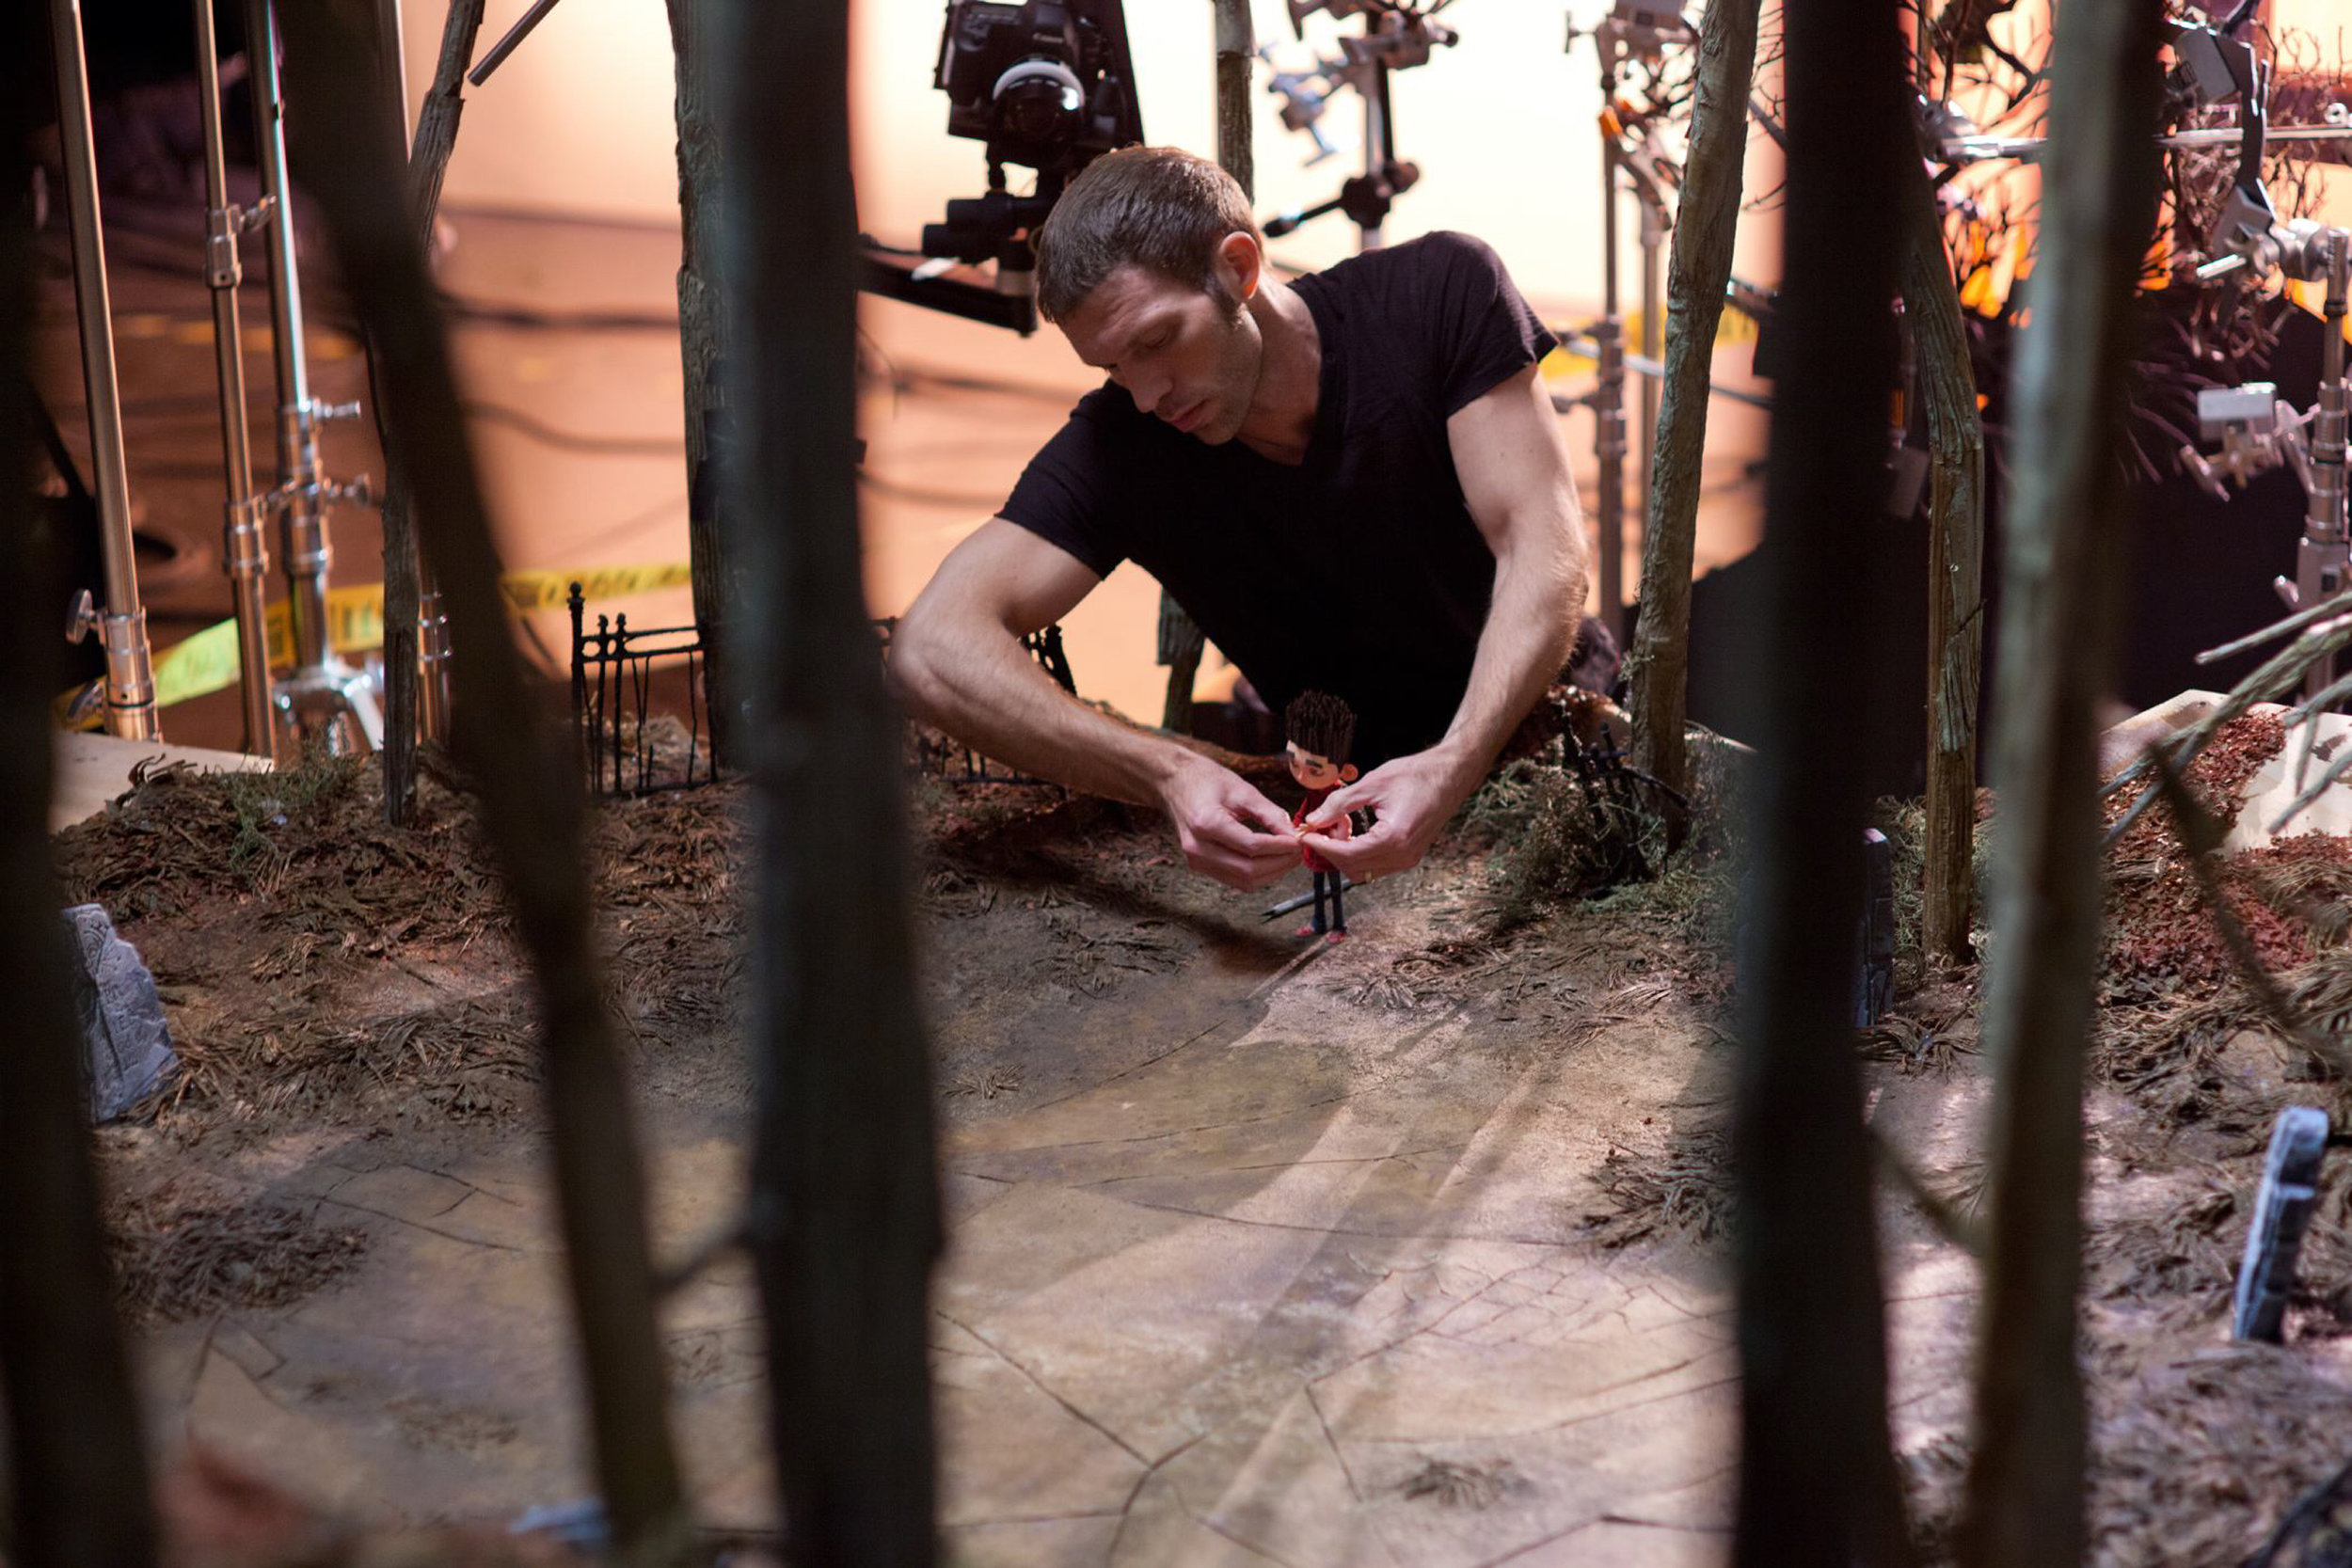 Producer and Head Animator Travis Knight at work with Norman on the graveyard set of ParaNorman, the new 3D stop-motion comedy thriller.  Credit: LAIKA, Inc.